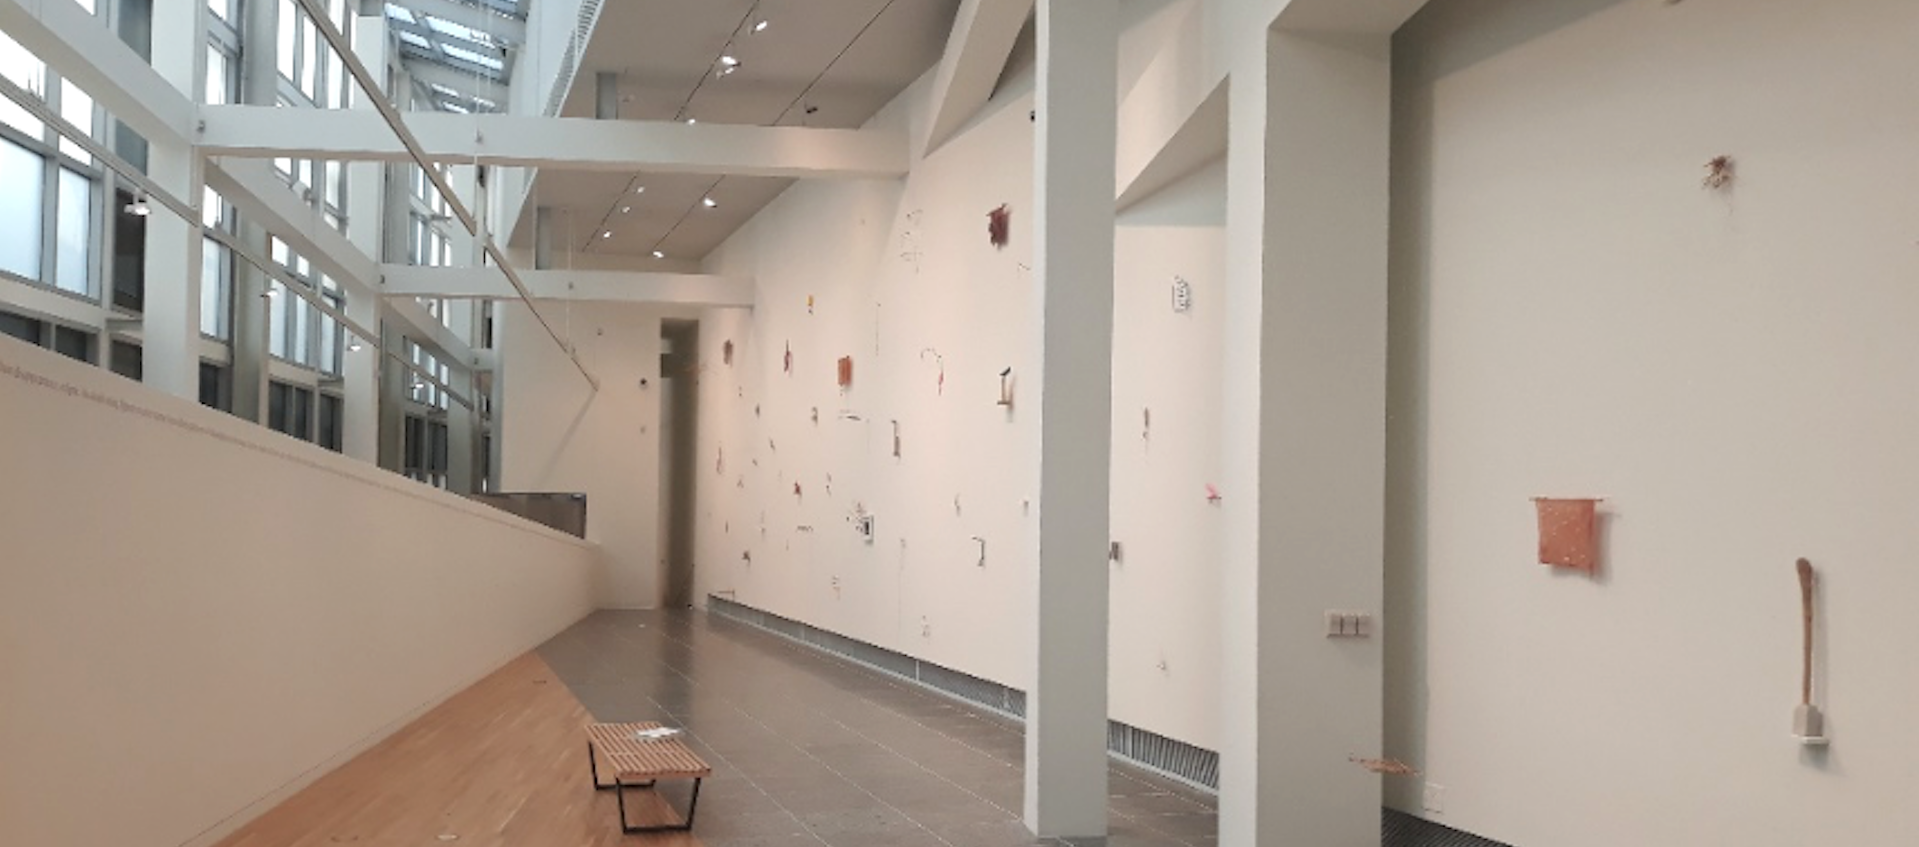 An image shot from above of Gallery B in the Wexner Center for the Arts at The Ohio State University. The image includes the white grid work near the ceiling of the center's galleries and an installation of precarios by artist Cecilia Vicuña.